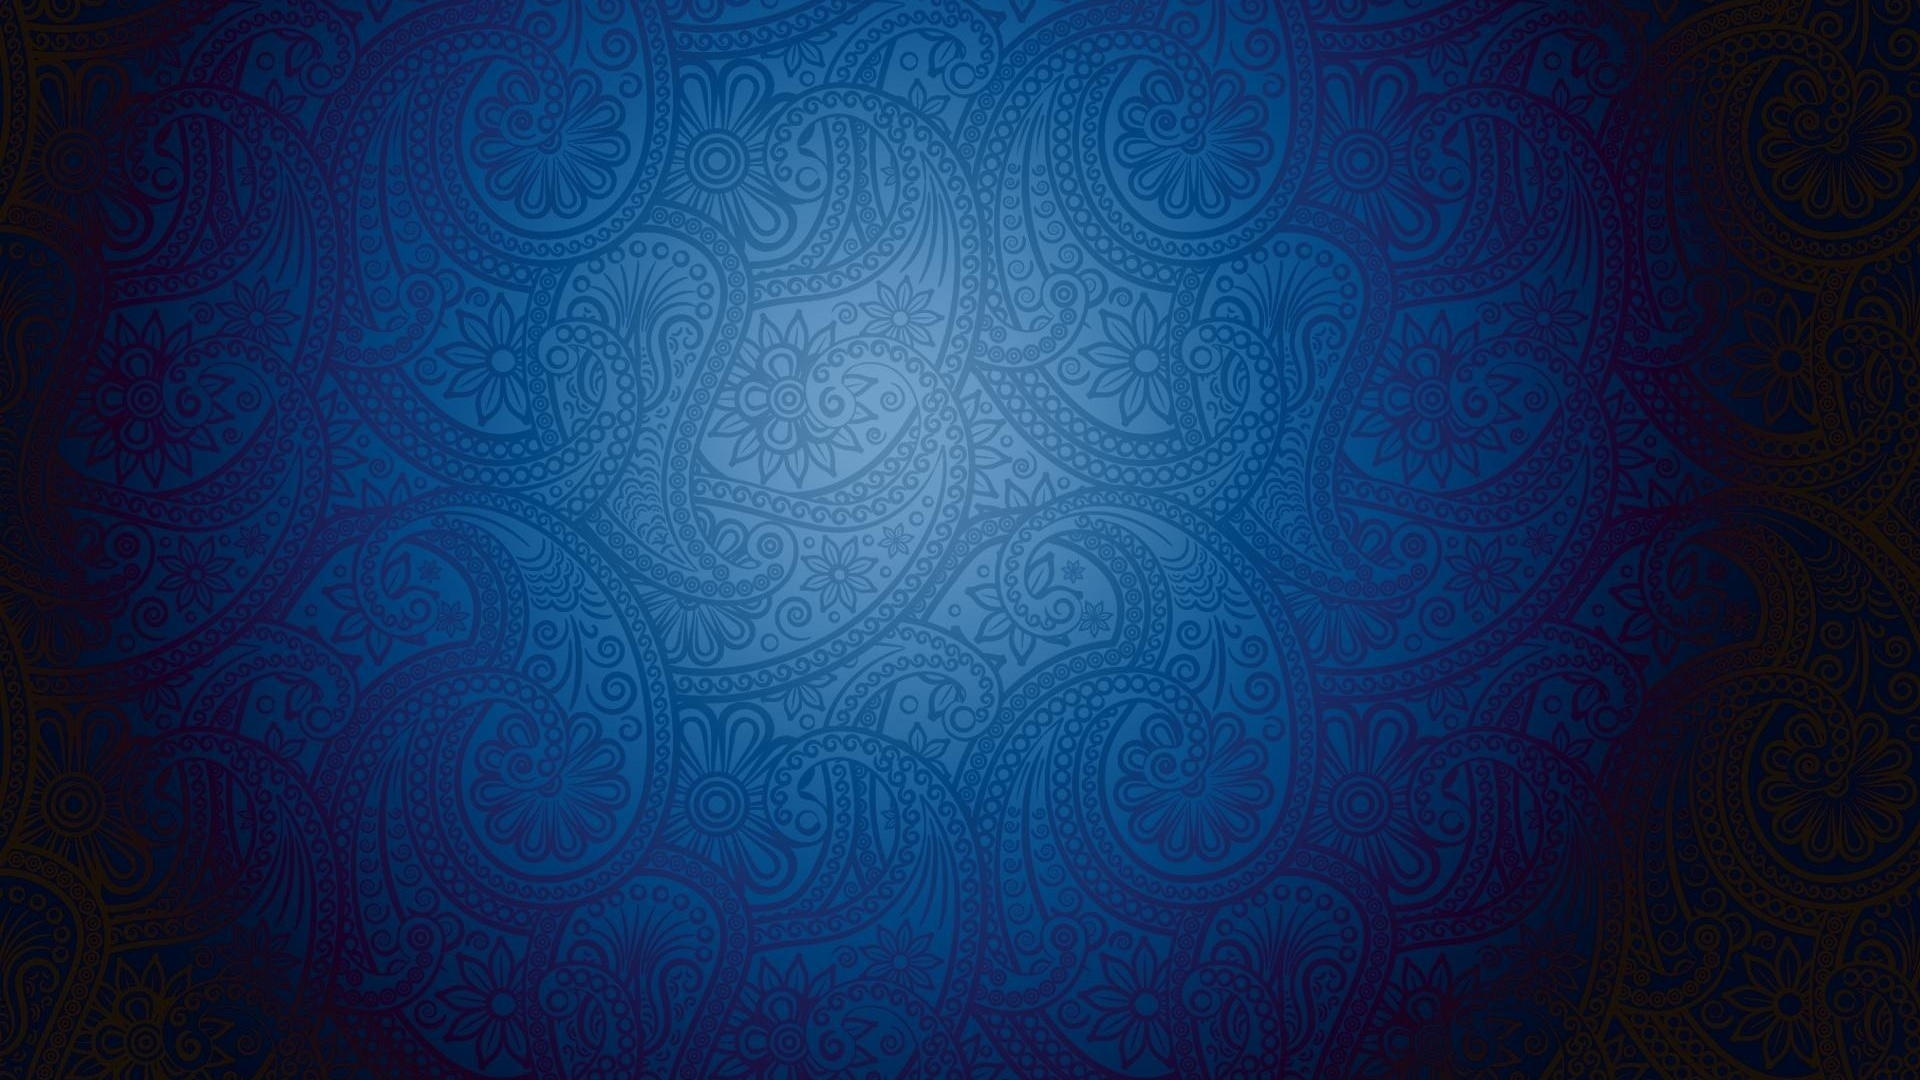 Royal Blue Backgrounds Png Free Royal Blue Backgrounds Png Transparent Images 62296 Pngio